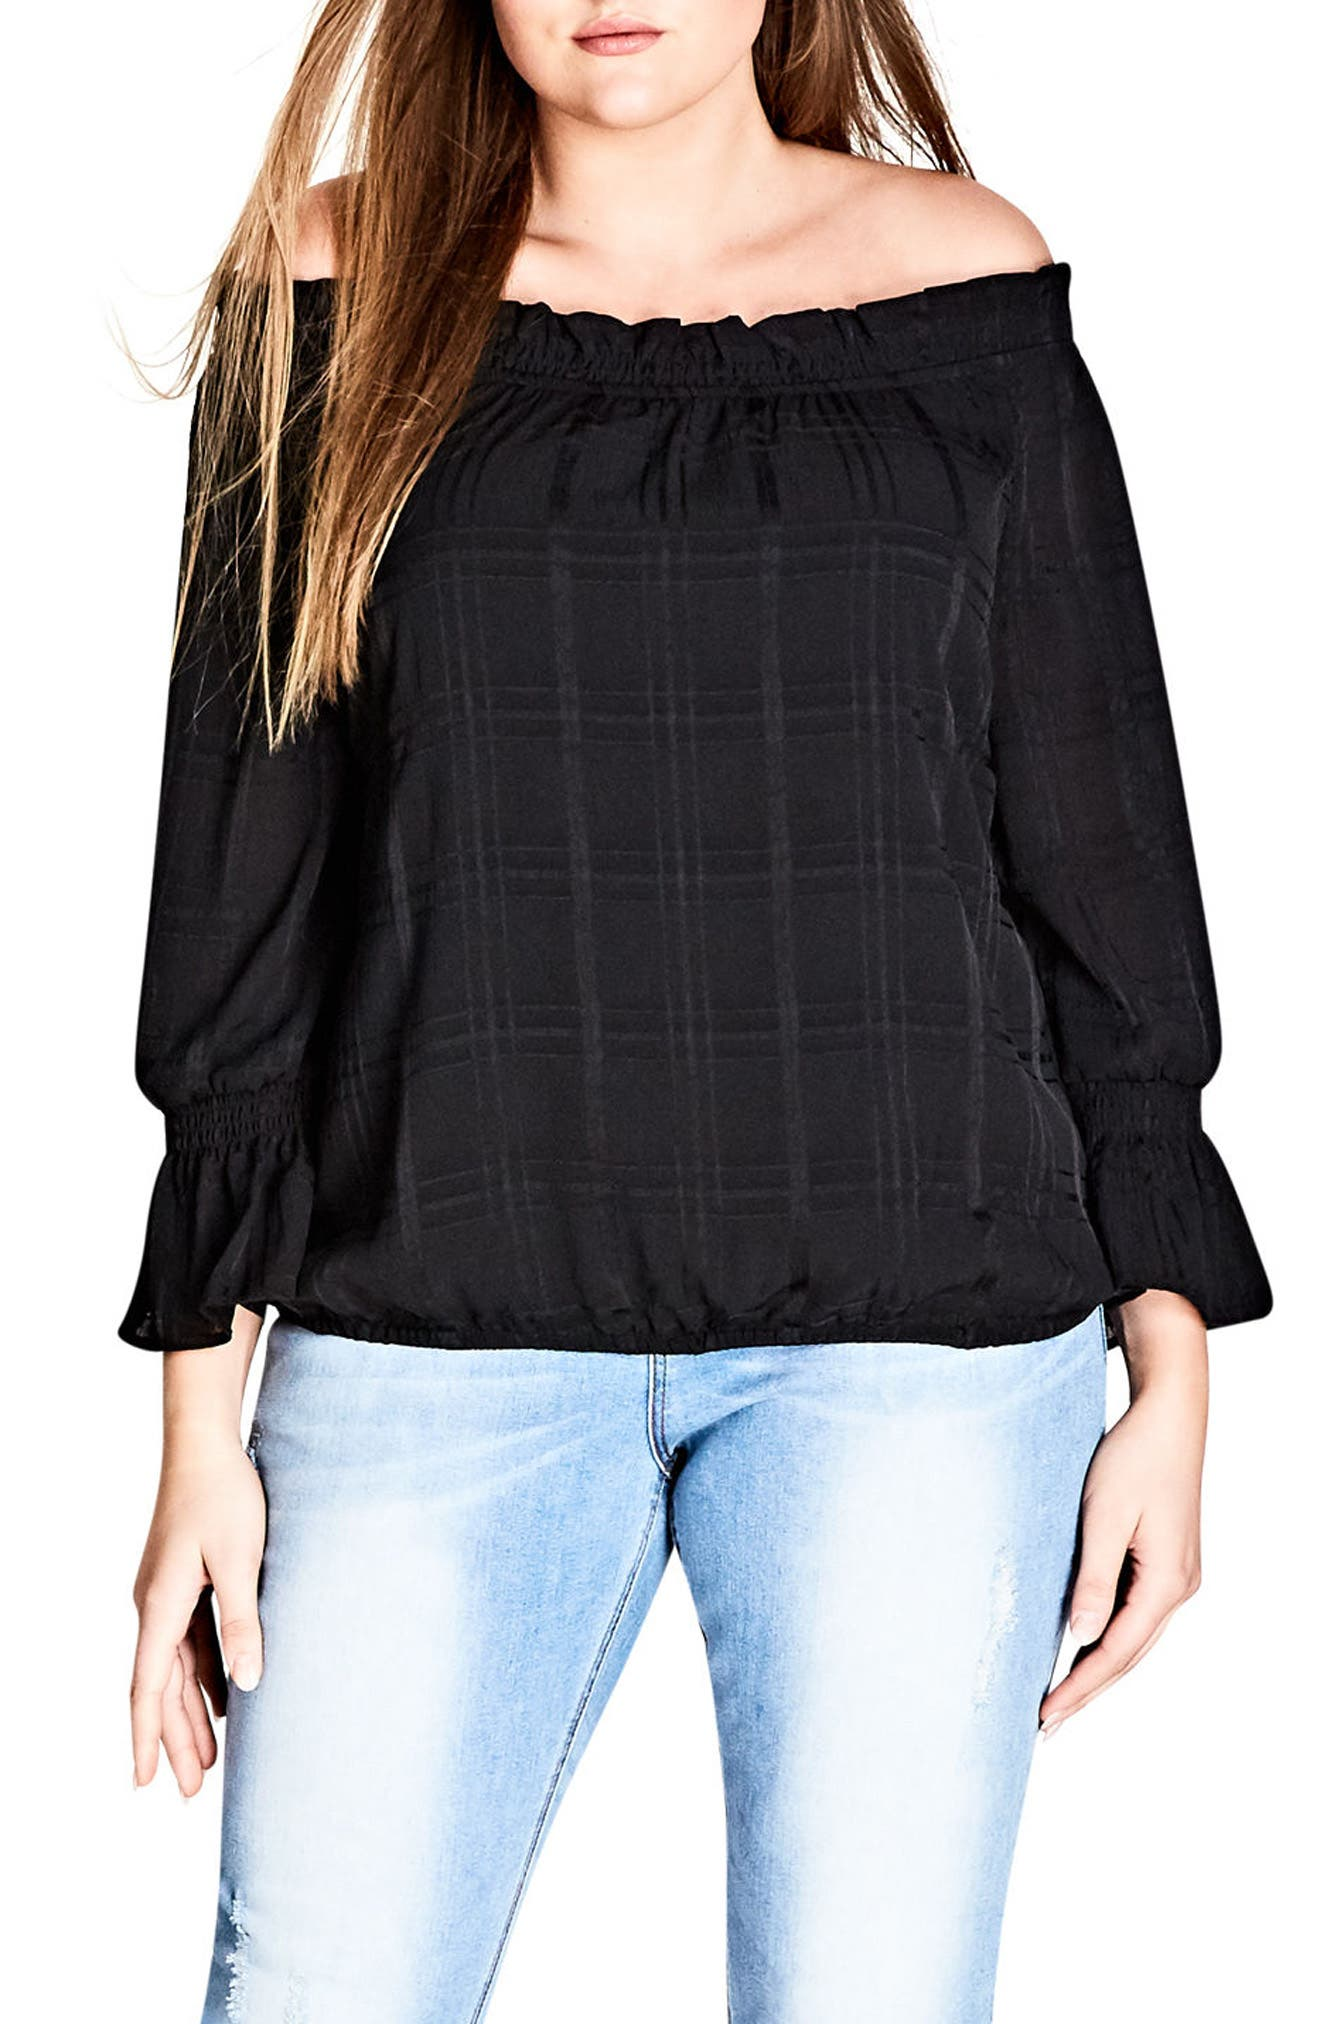 Main Image - City Chic Off the Shoulder Ruffle Top (Plus Size)